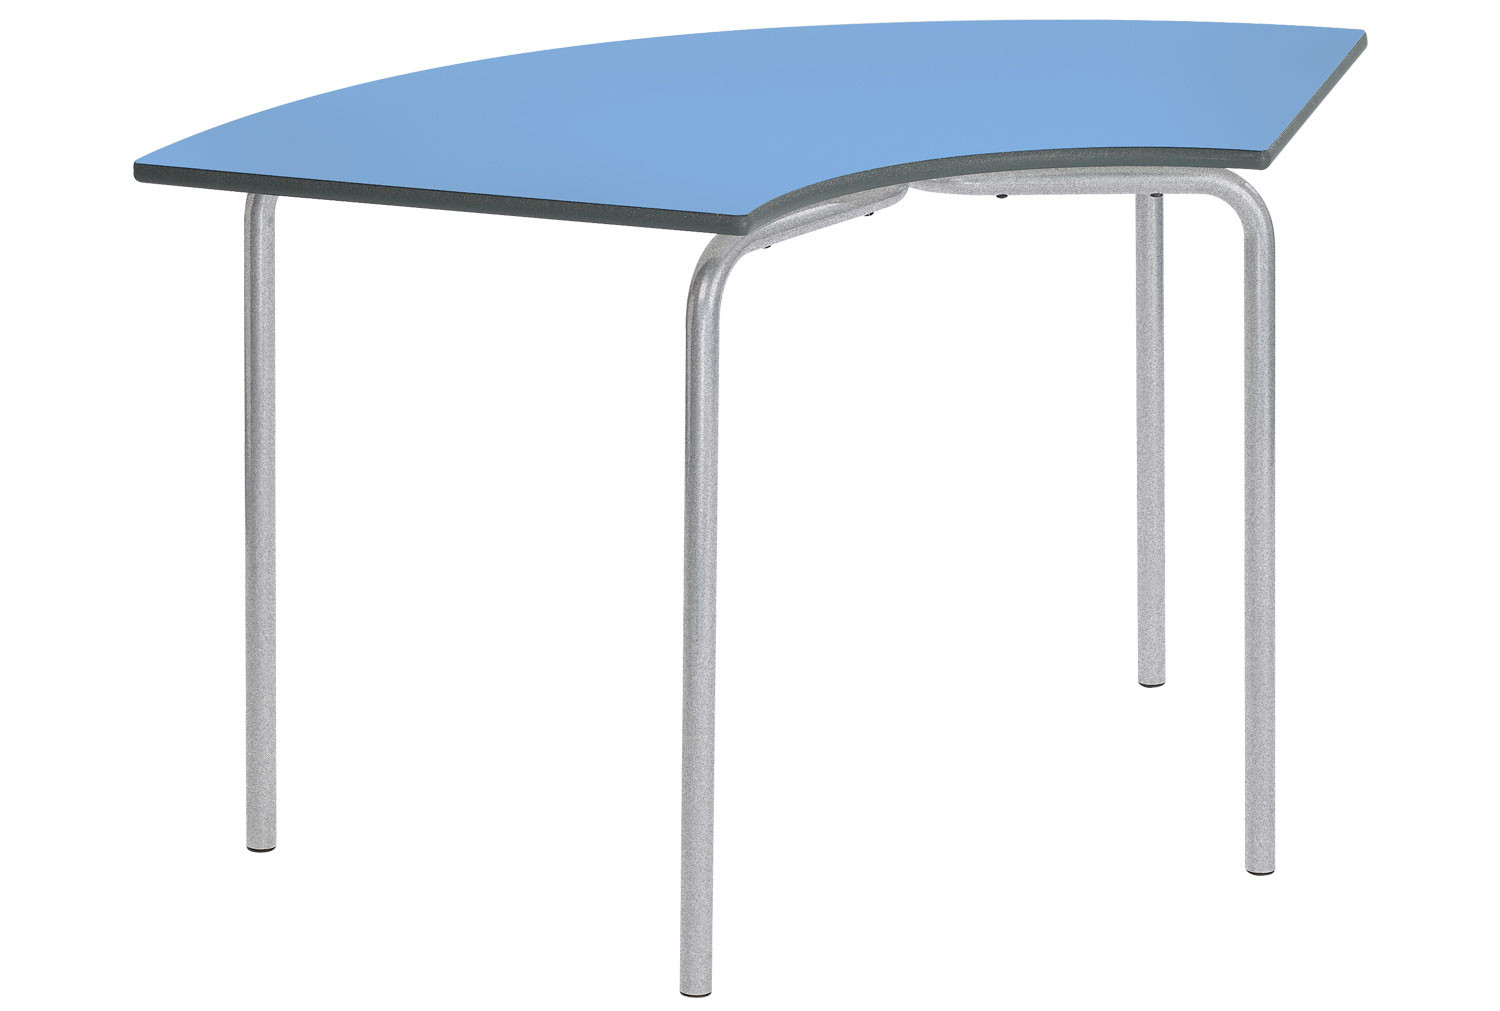 Equation Arc Shaped Classroom Tables 4-6 Years